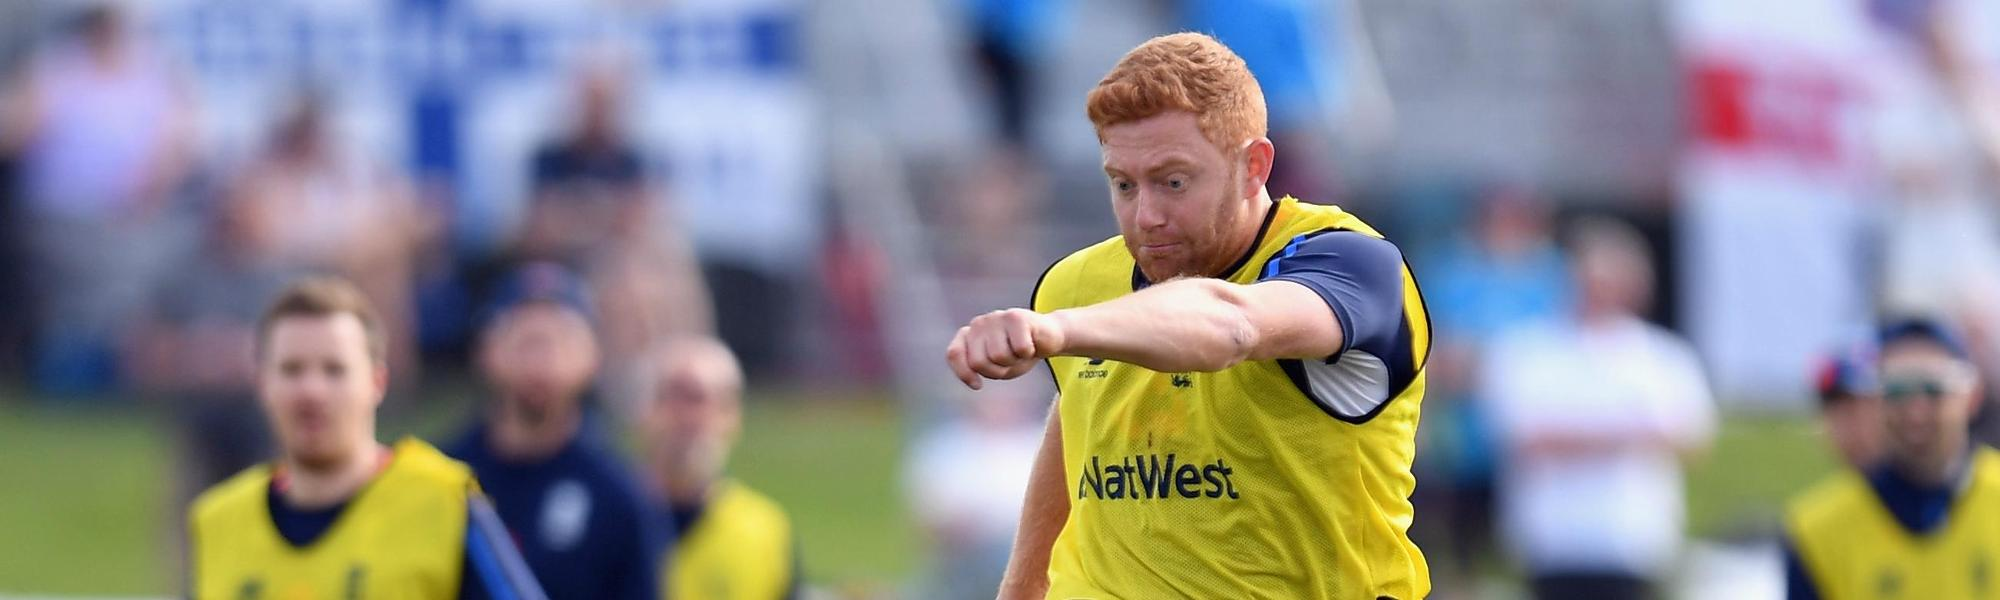 Jonny Bairstow was injured playing football in a training session